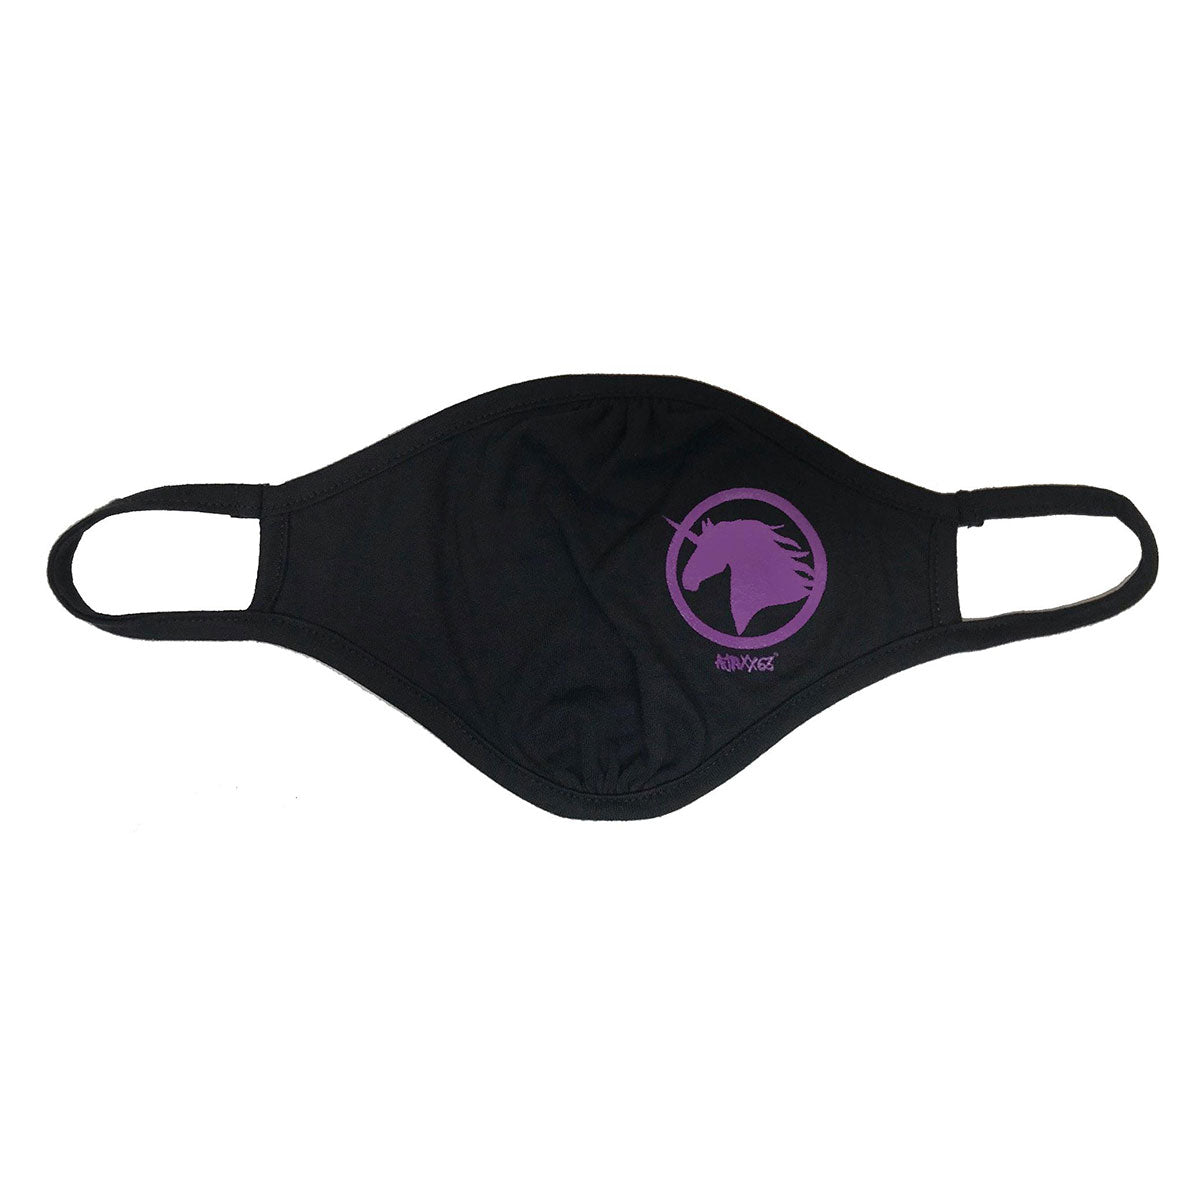 Shop Ajaxx63 Unicorn Sports Face Mask 1 available at MensUnderwear.io